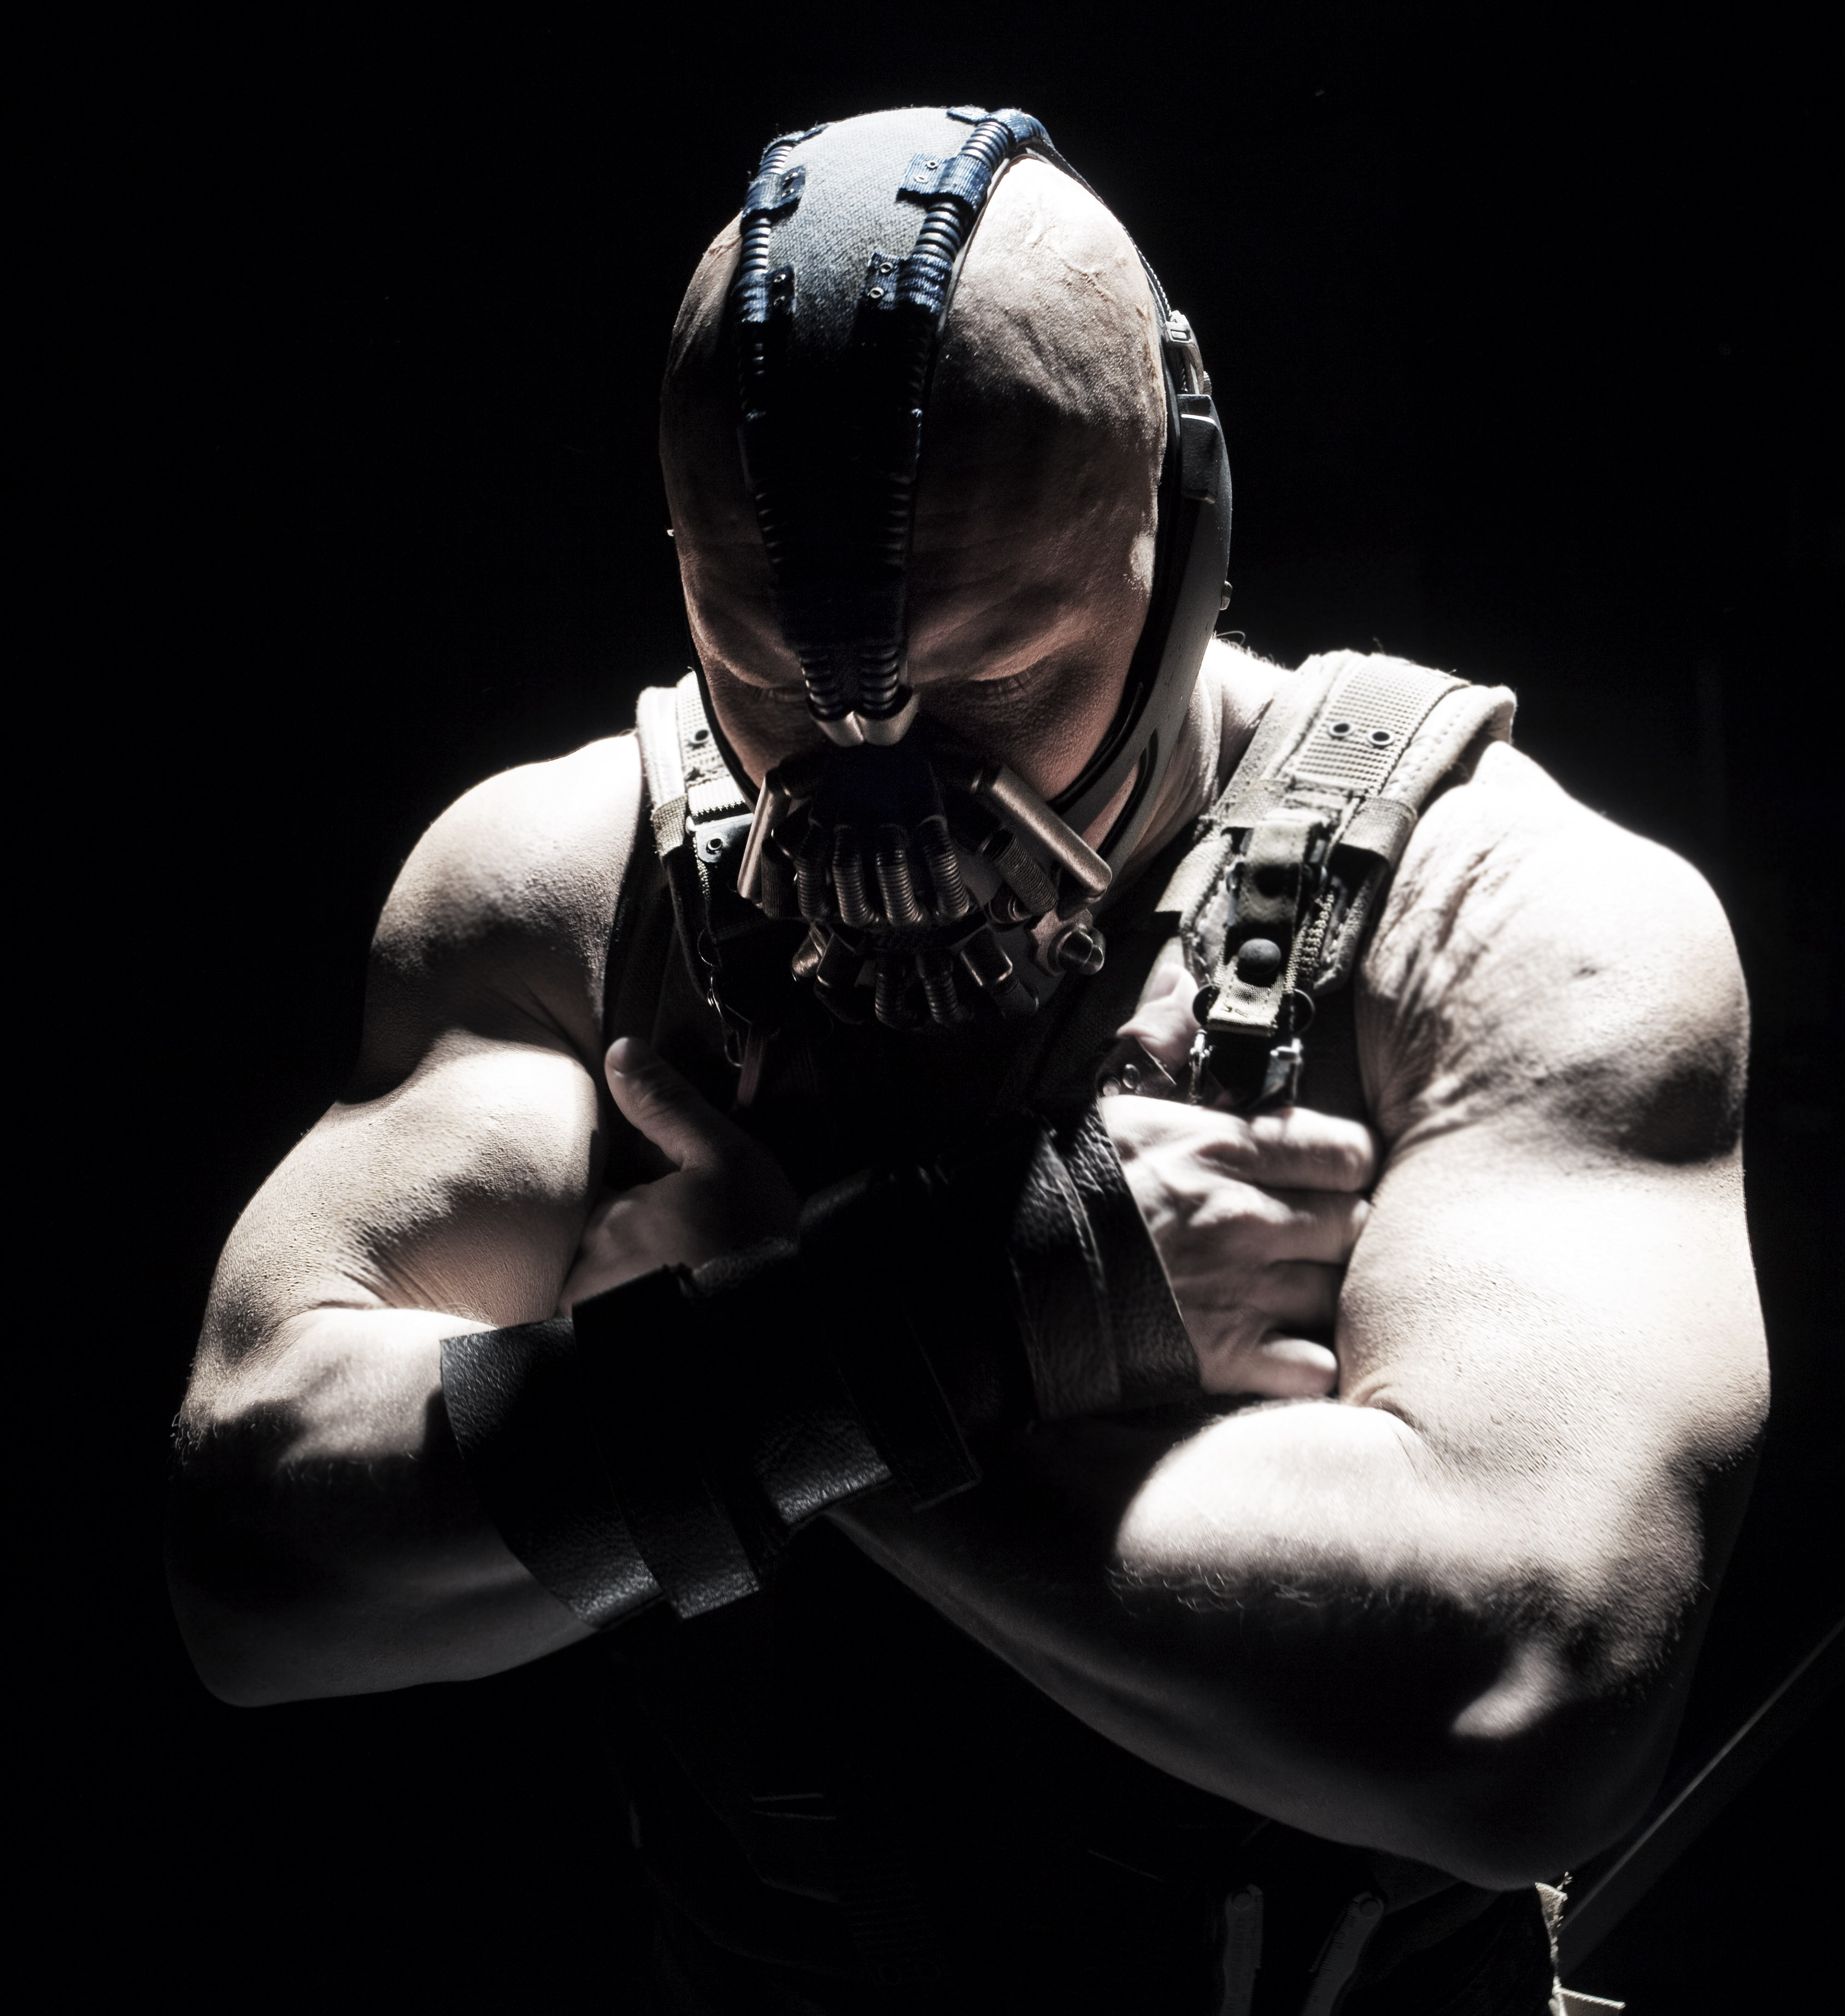 The Dark Knight Rises -  Bane - Full HD by MarkMajor